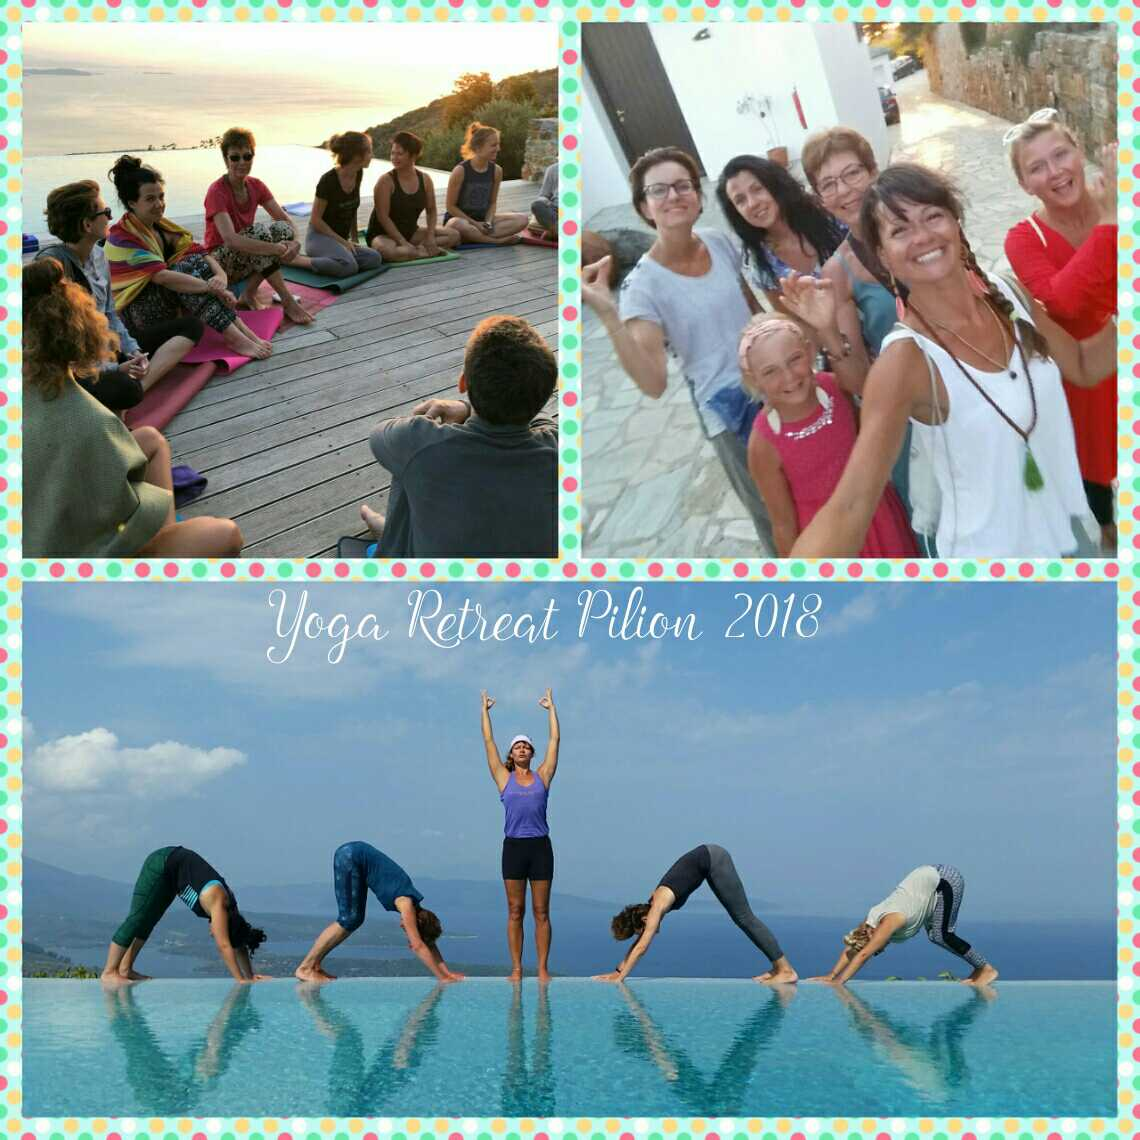 YogaRetreat Pilion2.jpg